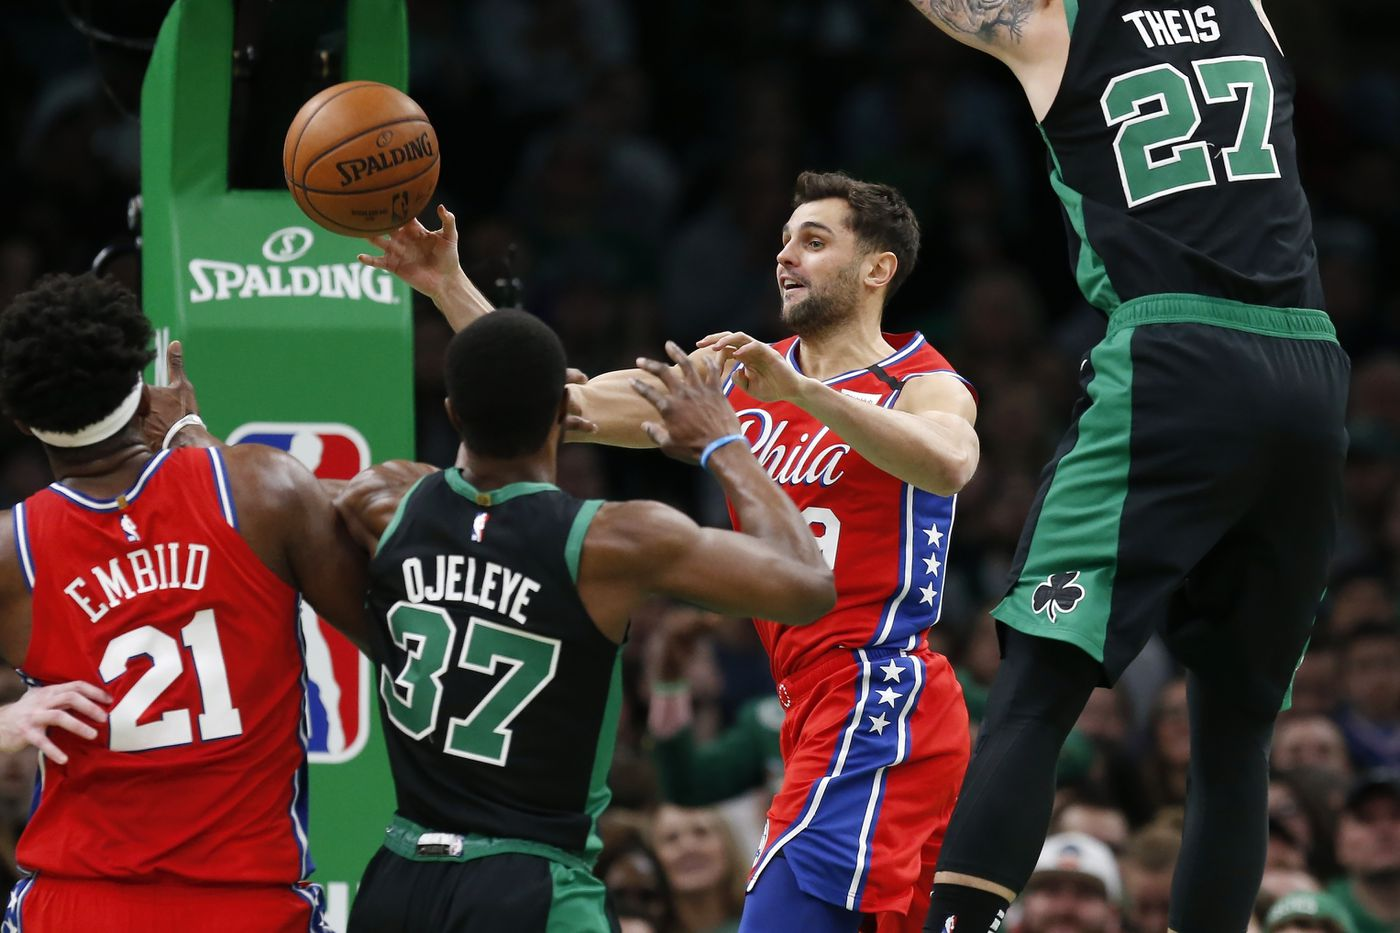 The Sixers' Raul Neto tries to pass out of a traffic jam in the lane during the first half.